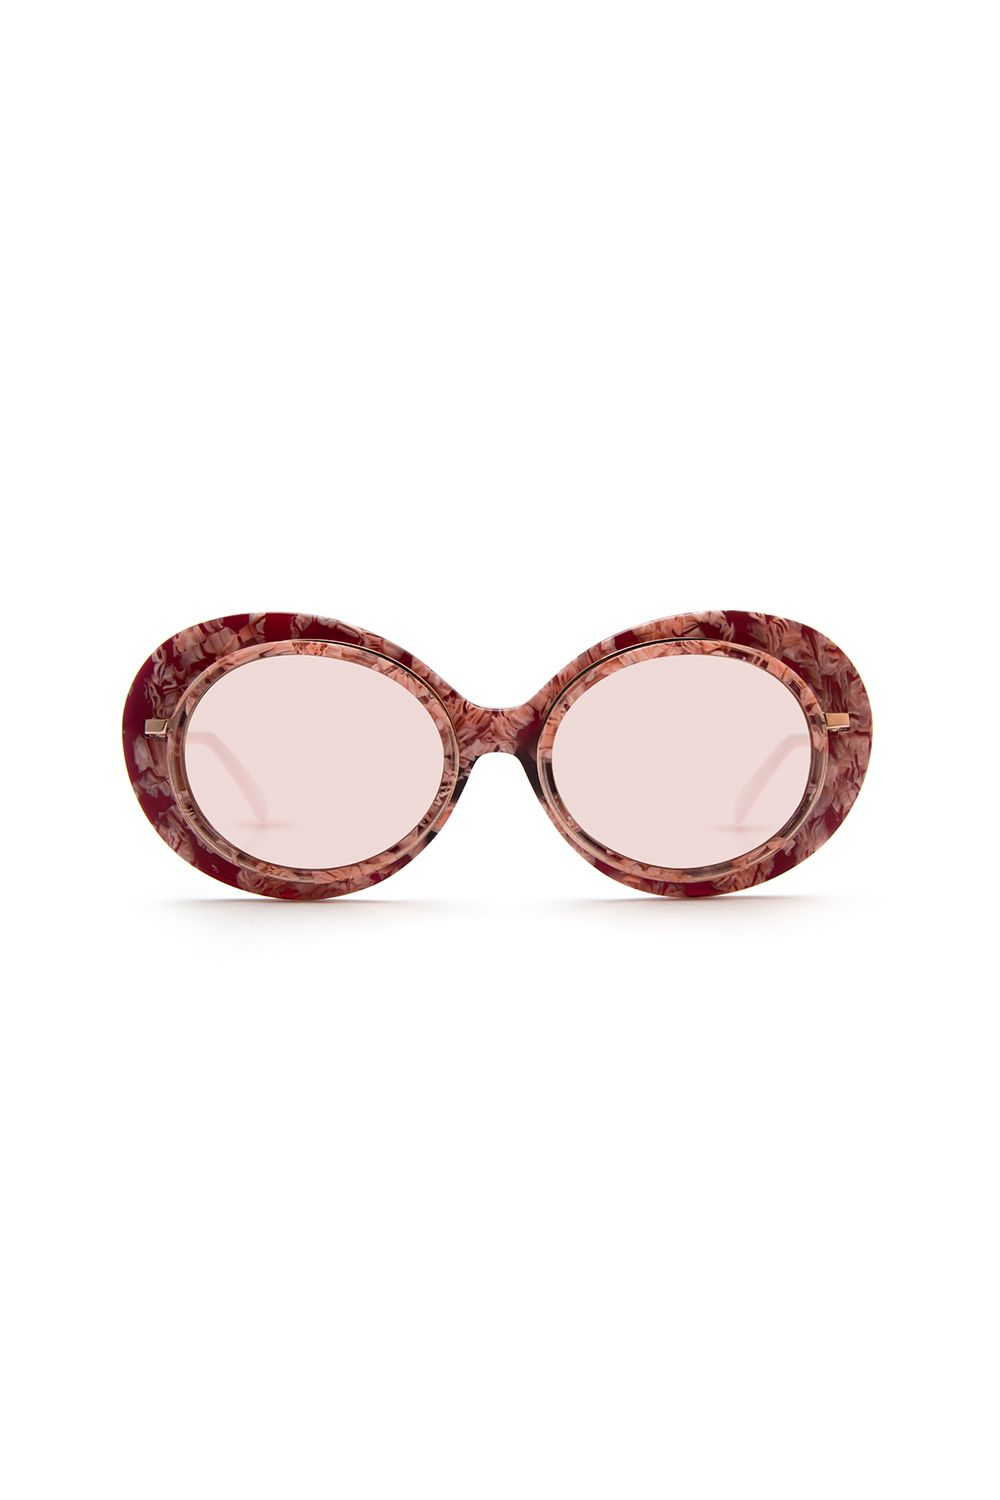 "<p>With marbled acetate and real gold hardware, this is an Italian villa you can wear on your face.&nbsp&#x3B;</p><p><em data-redactor-tag=""em"" data-verified=""redactor"">Krewe, $315</em></p><p><strong data-redactor-tag=""strong"" data-verified=""redactor"">BUY IT: <a href=""https://www.krewe.com/collections/iris/products/iris-calypso-rose-gold"" target=""_blank"" data-tracking-id=""recirc-text-link"">krewe.com</a>.</strong></p>"